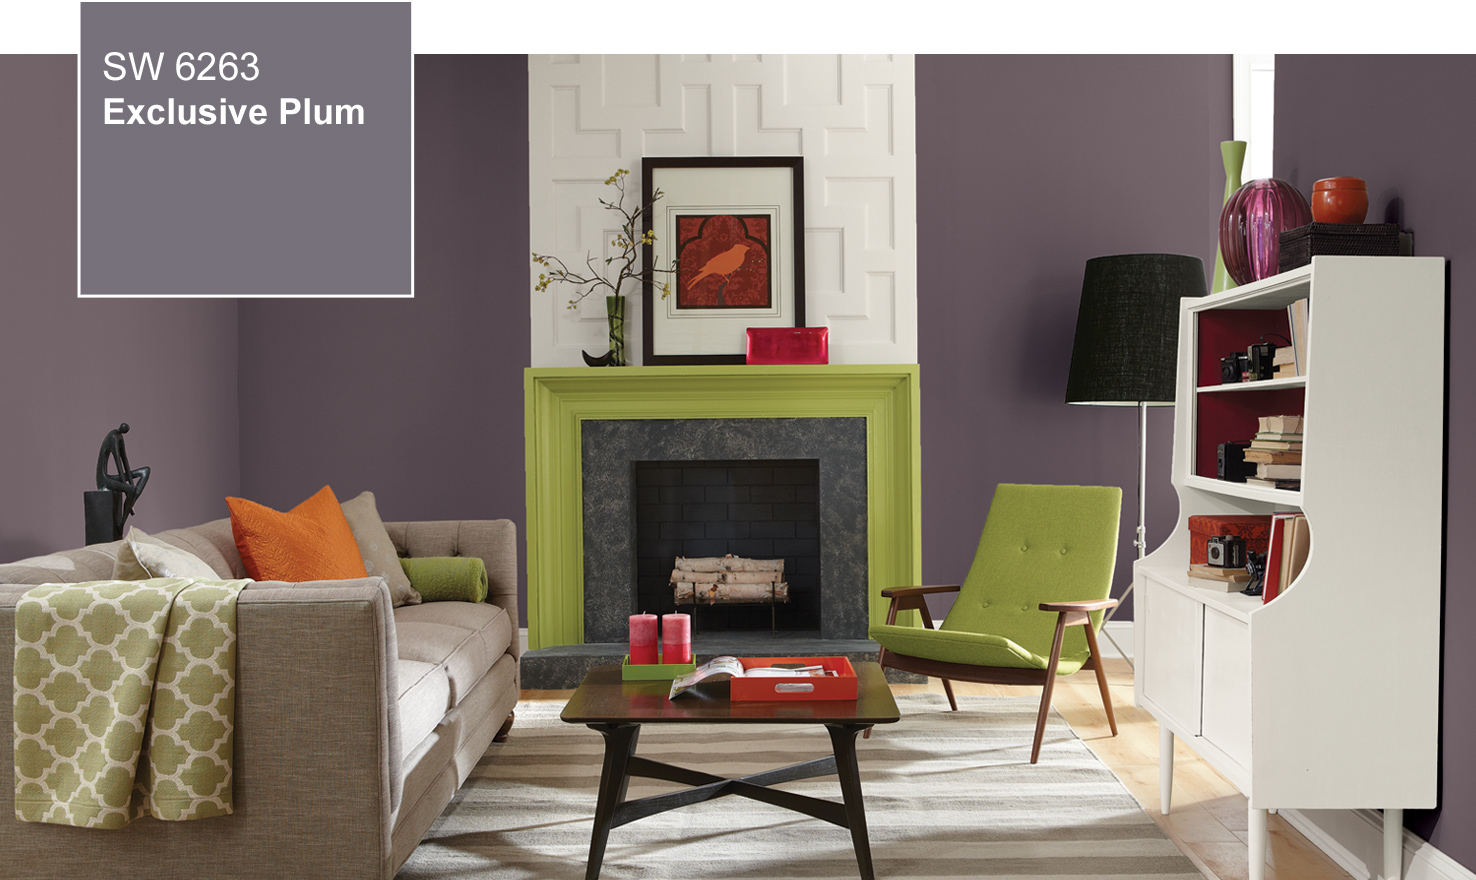 Sherwin Williams Paint Color Of The Year 2014 Color Of The Year Exclusive Plum Sw 6263 By